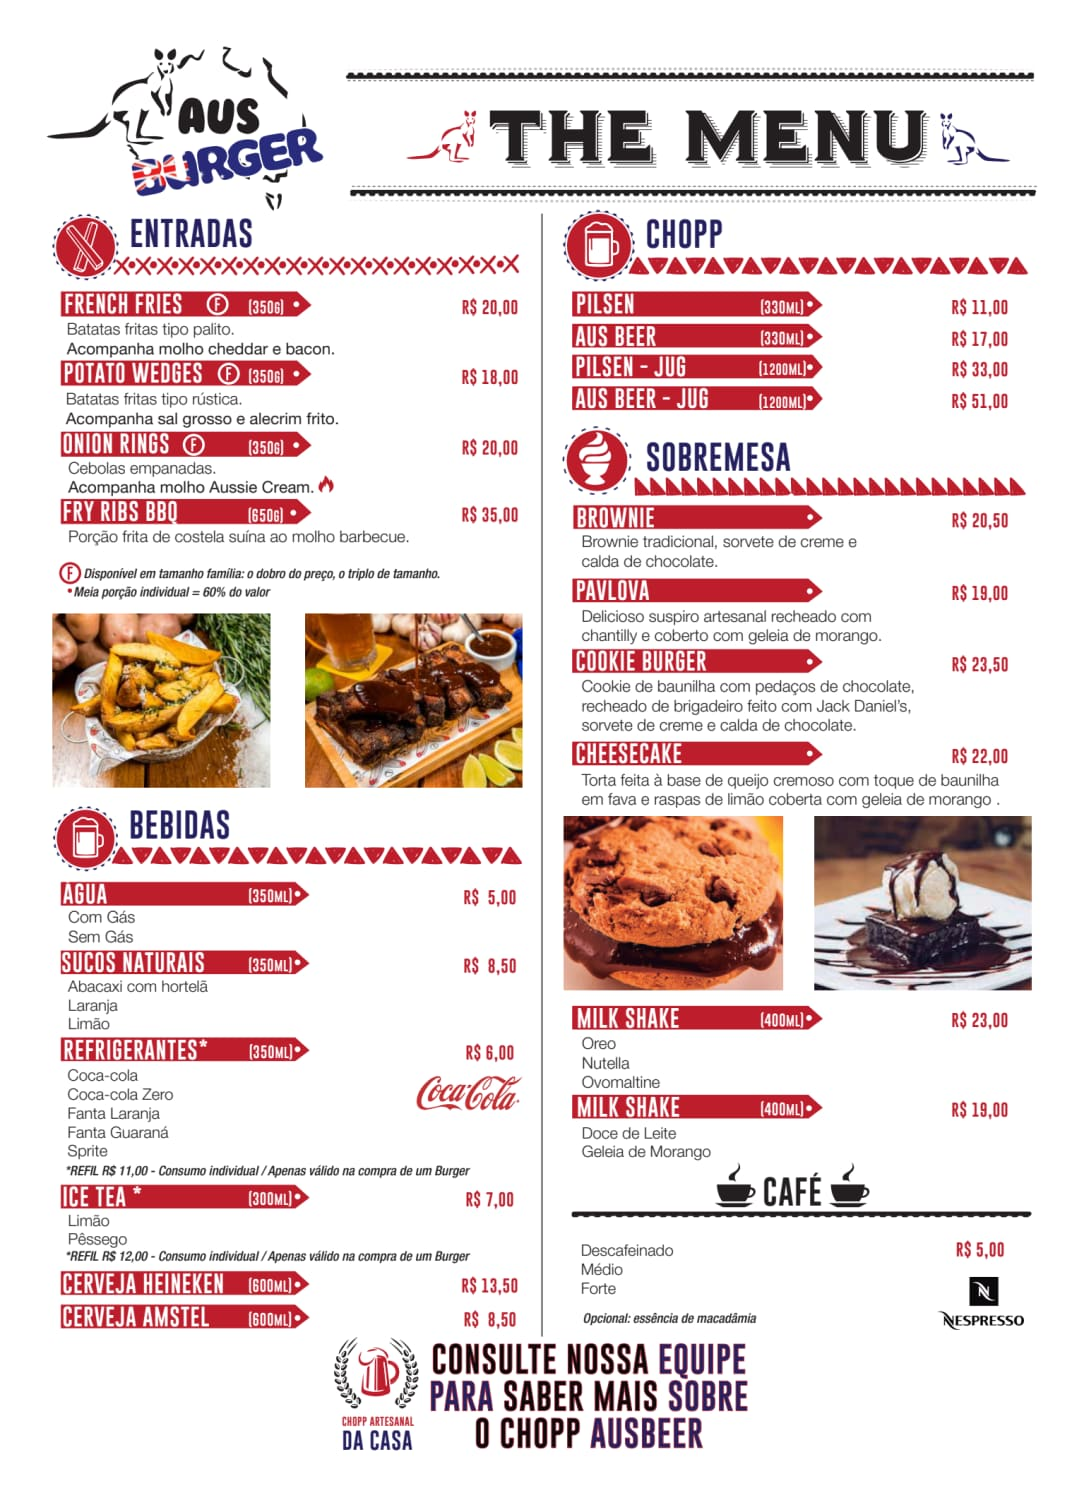 Menu do restaurante Aus Burger - Página 1